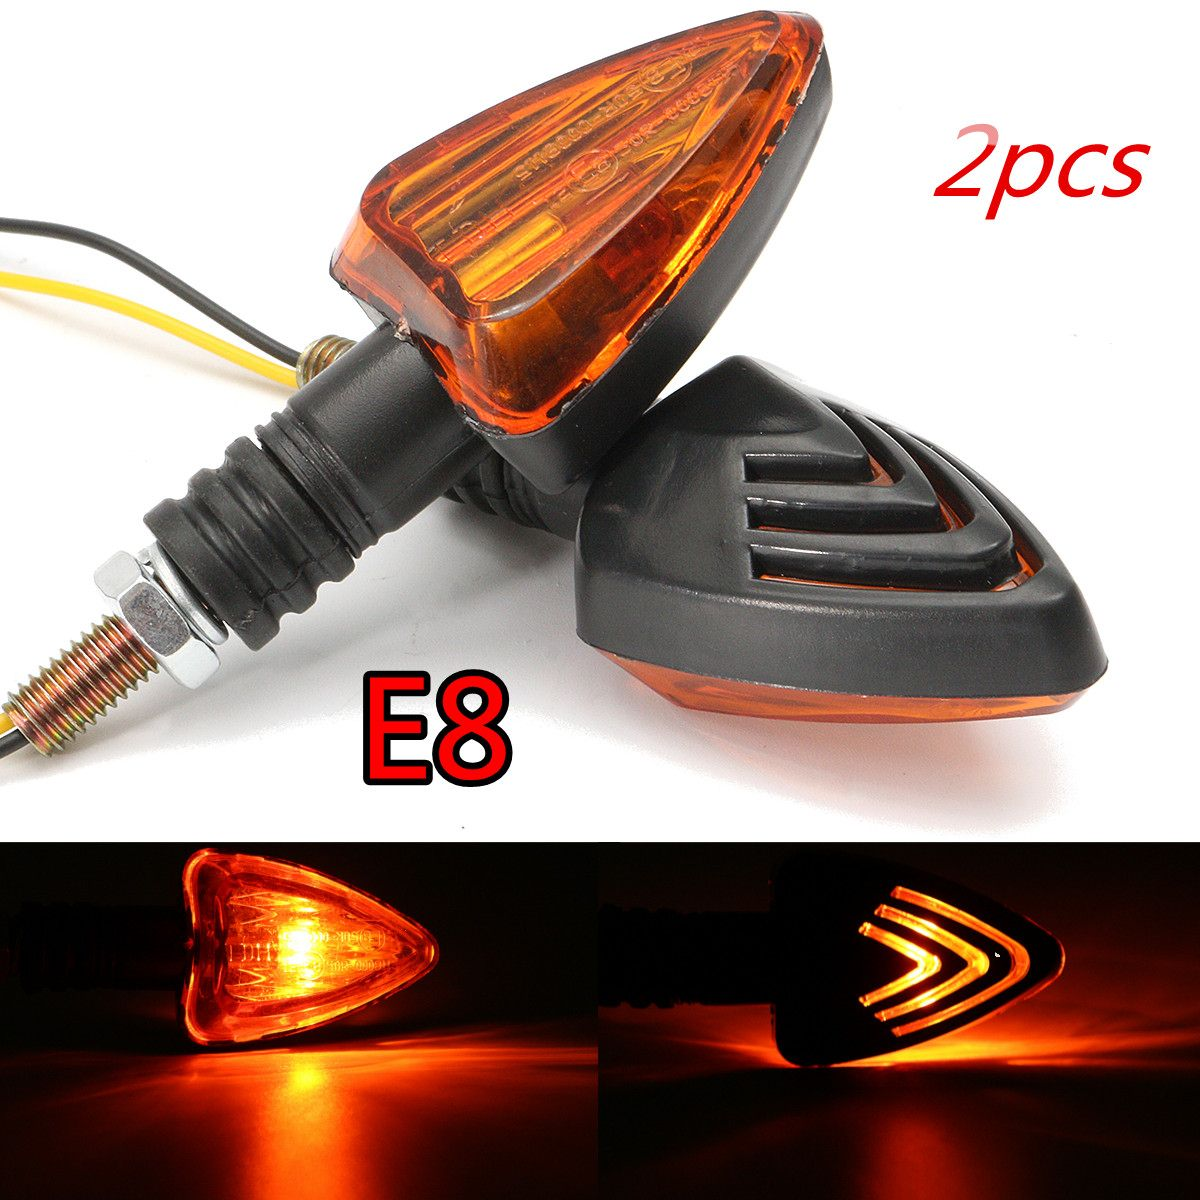 Pair Universal Motorcycle Turn Signal Light E8 Approved Indicator Lamps Amber For Honda/Yamaha/Suzuki